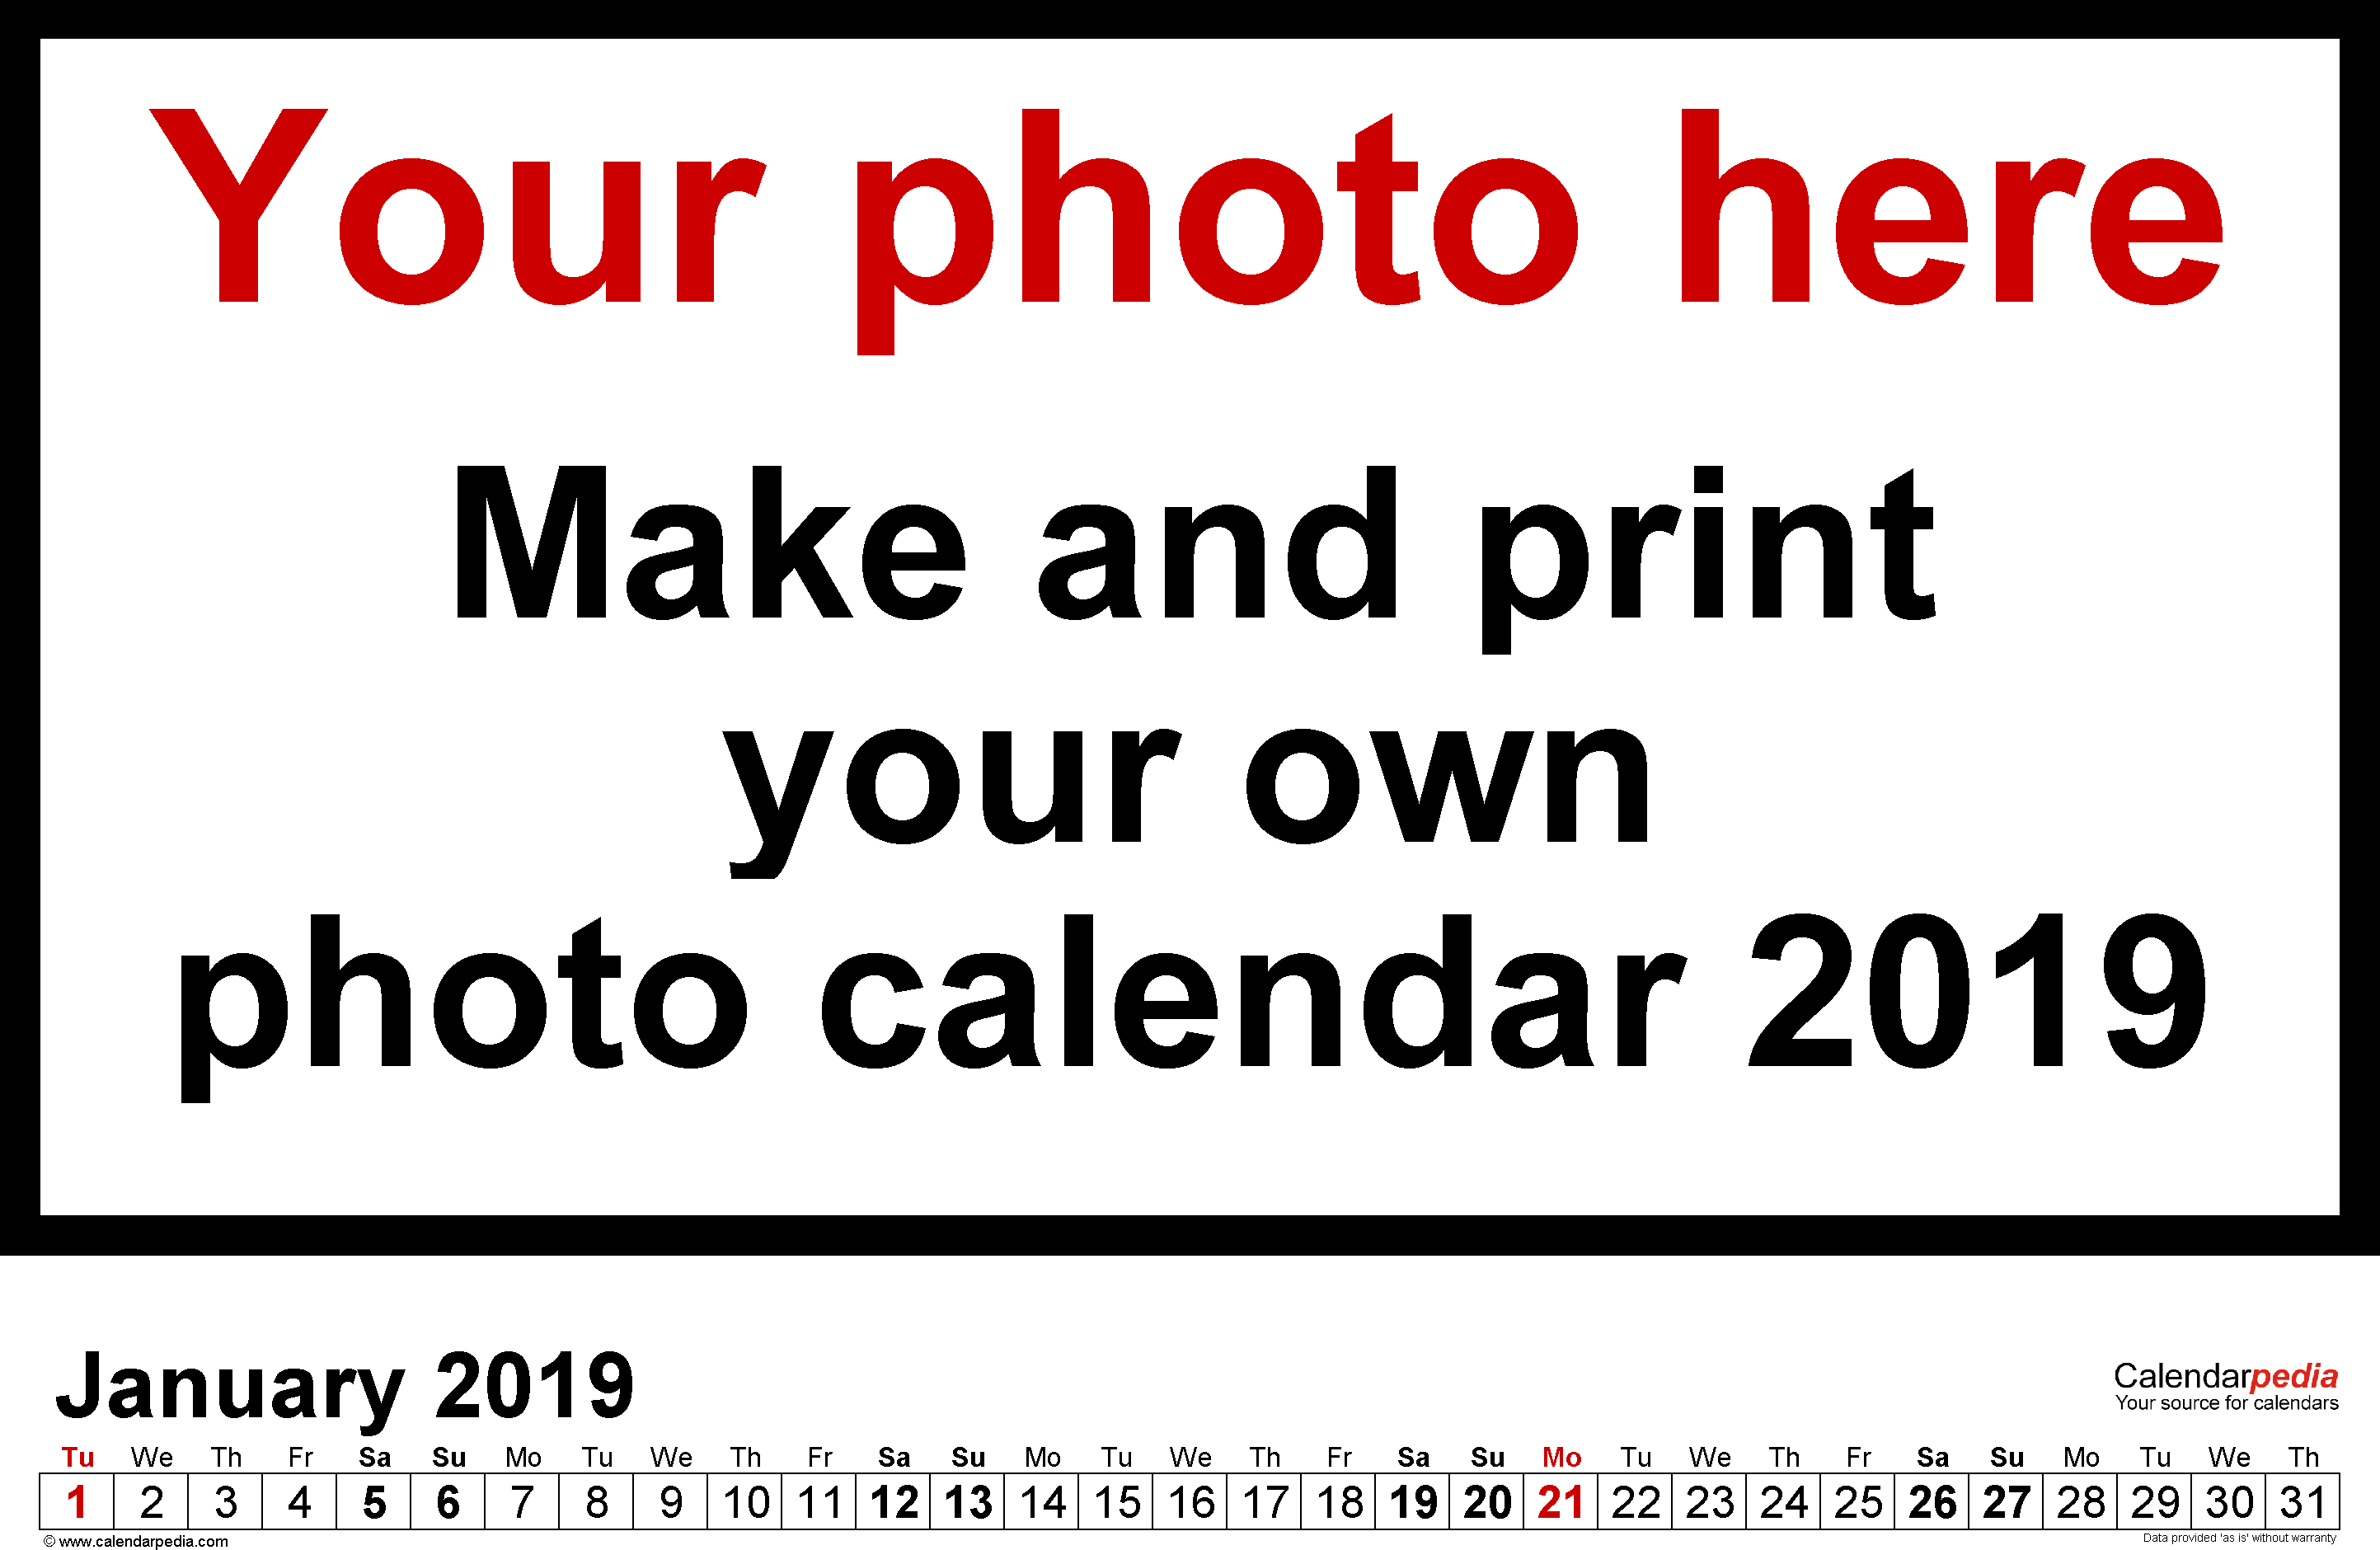 Template 5: Photo calendar 2019 for Excel, 12 pages, landscape format